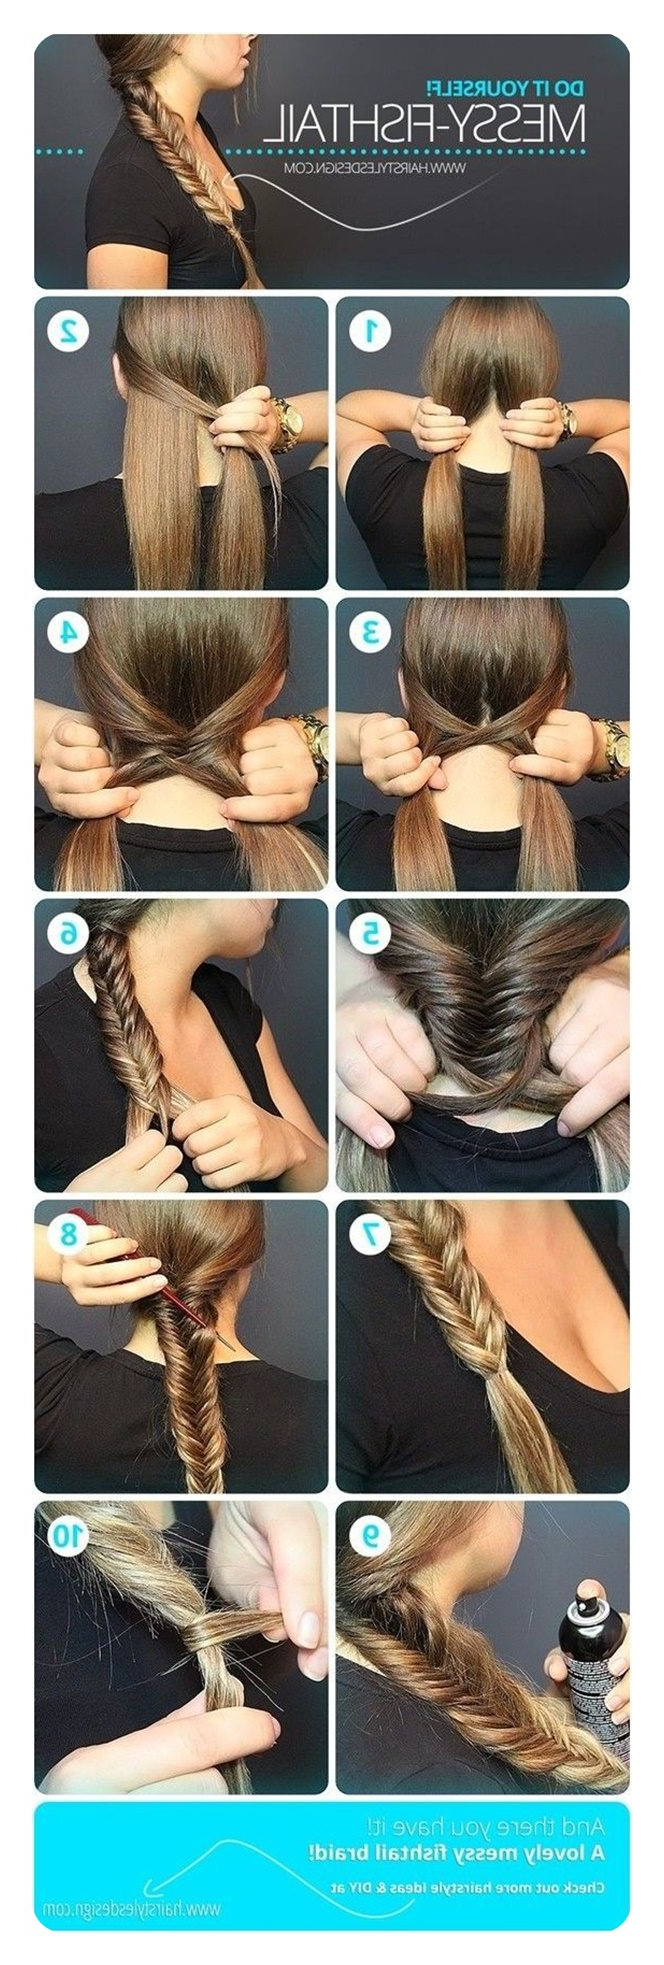 104 Fishtail Braids Hairstyles That Turn Heads Throughout Most Recent Messy Side Fishtail Braided Hairstyles (View 7 of 20)